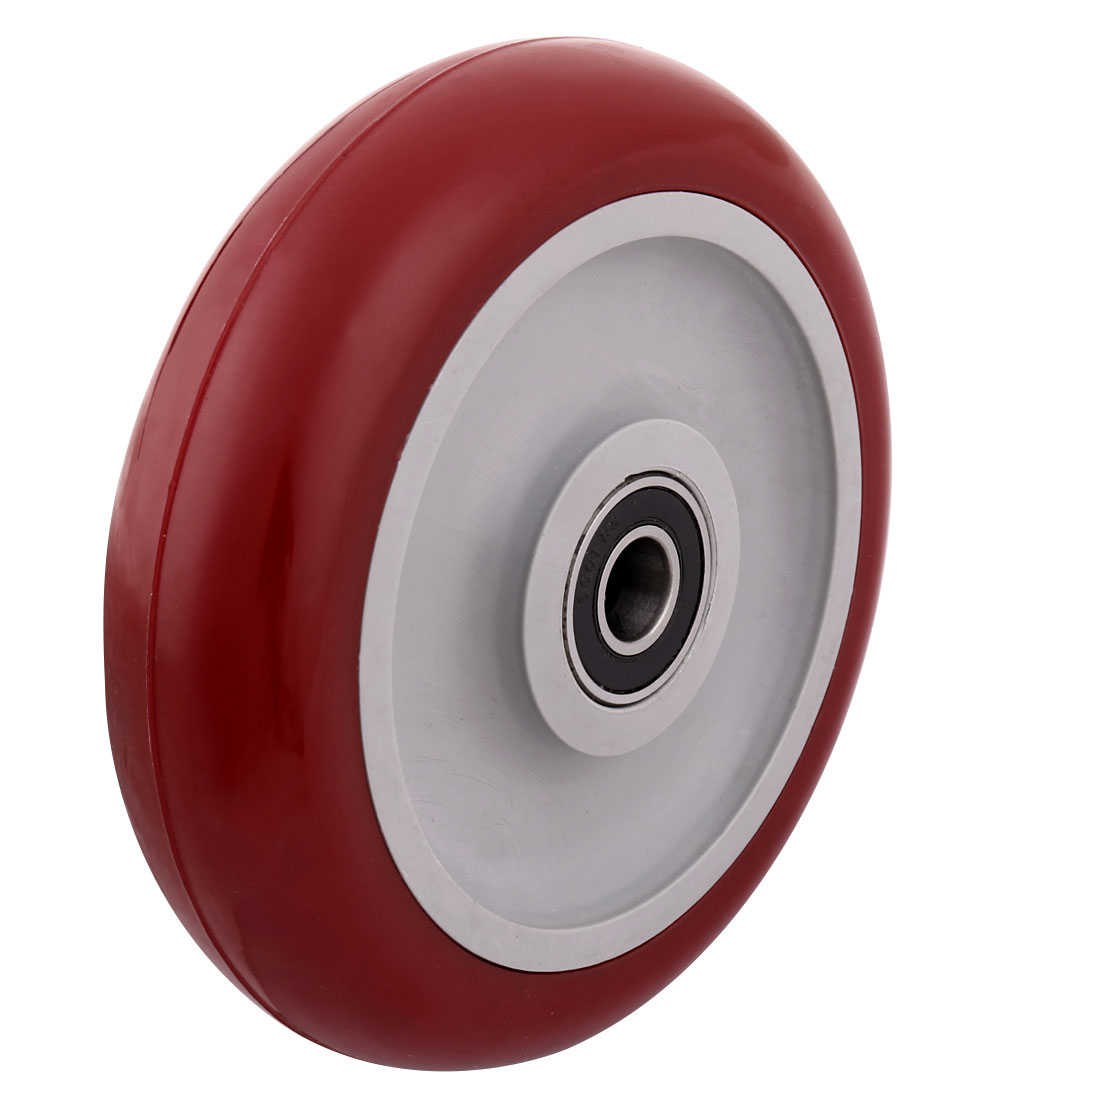 Household Market Shopping Cart Pallet Hand Trolley Replacement Casters Wheel Red